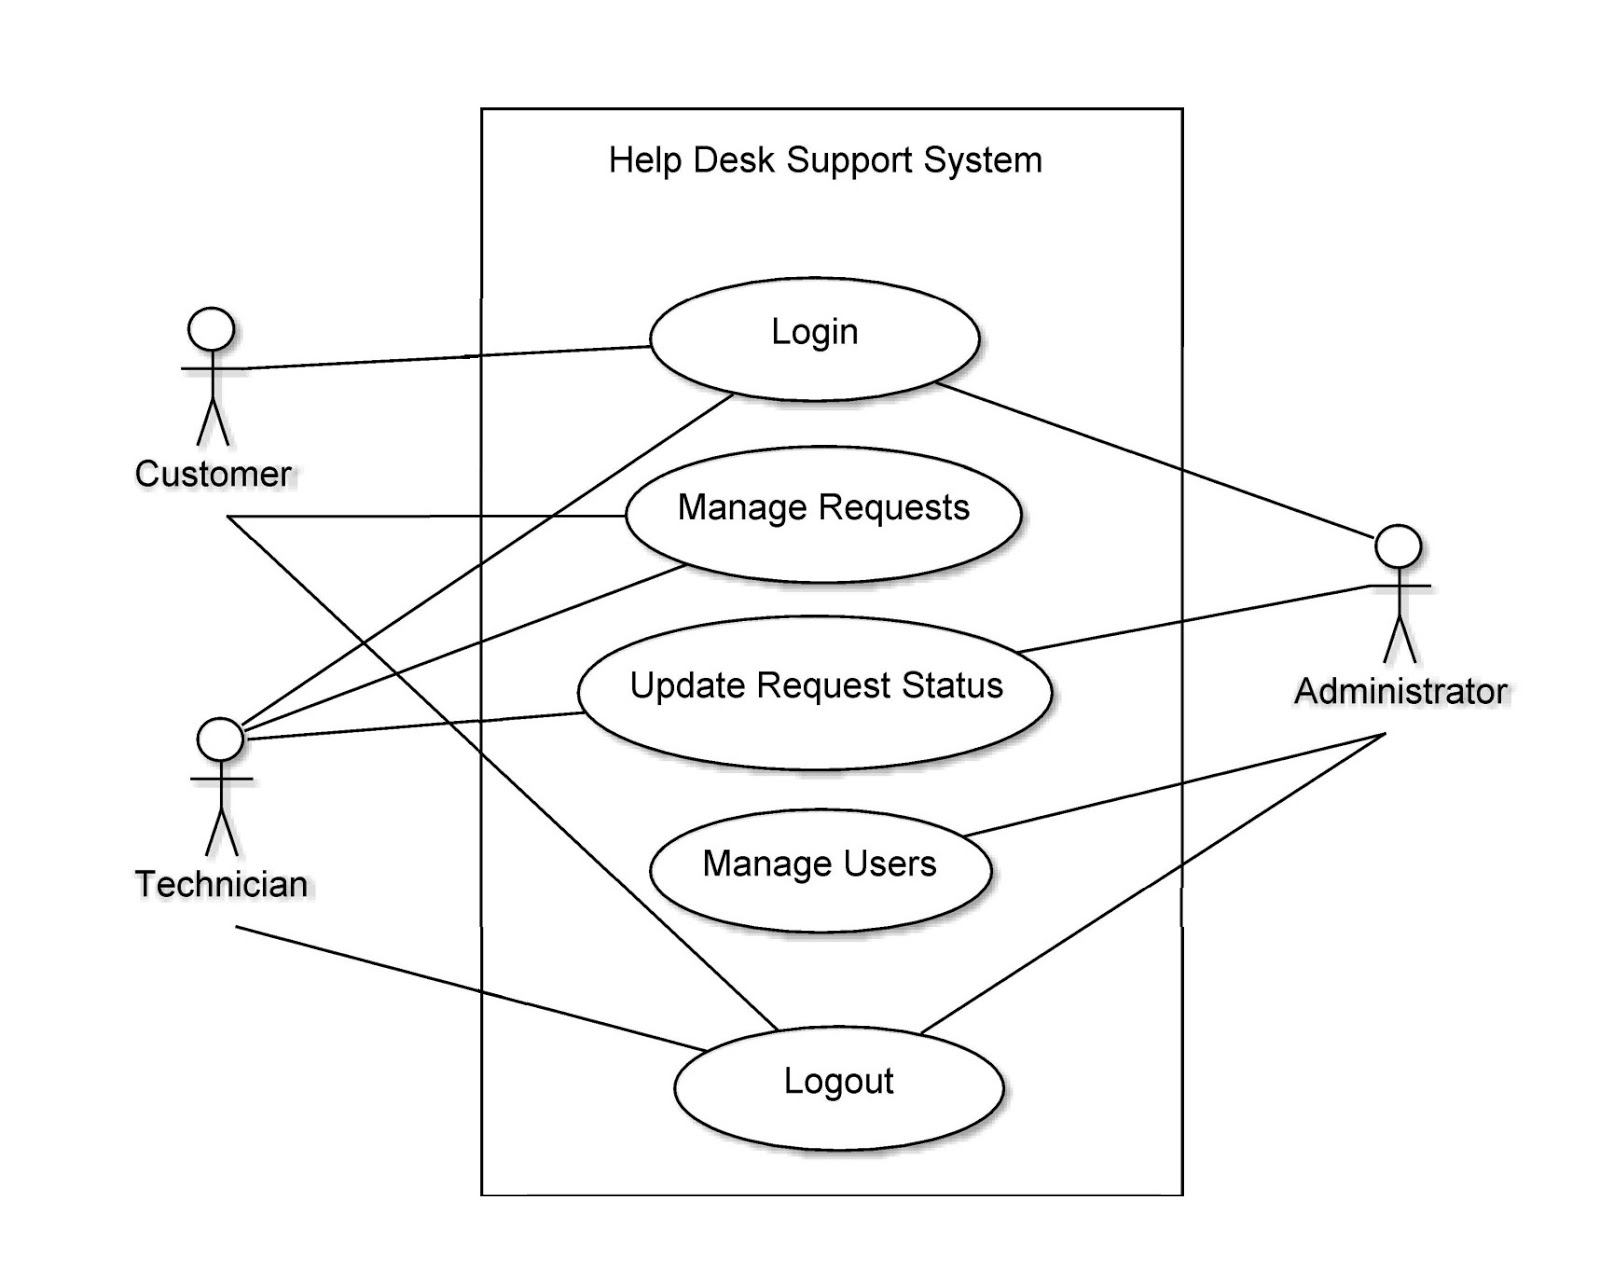 State Transition Diagram Example Library Management System John Deere 140 Lawn Tractor Wiring Computer Science Assignments Help Desk Support Use